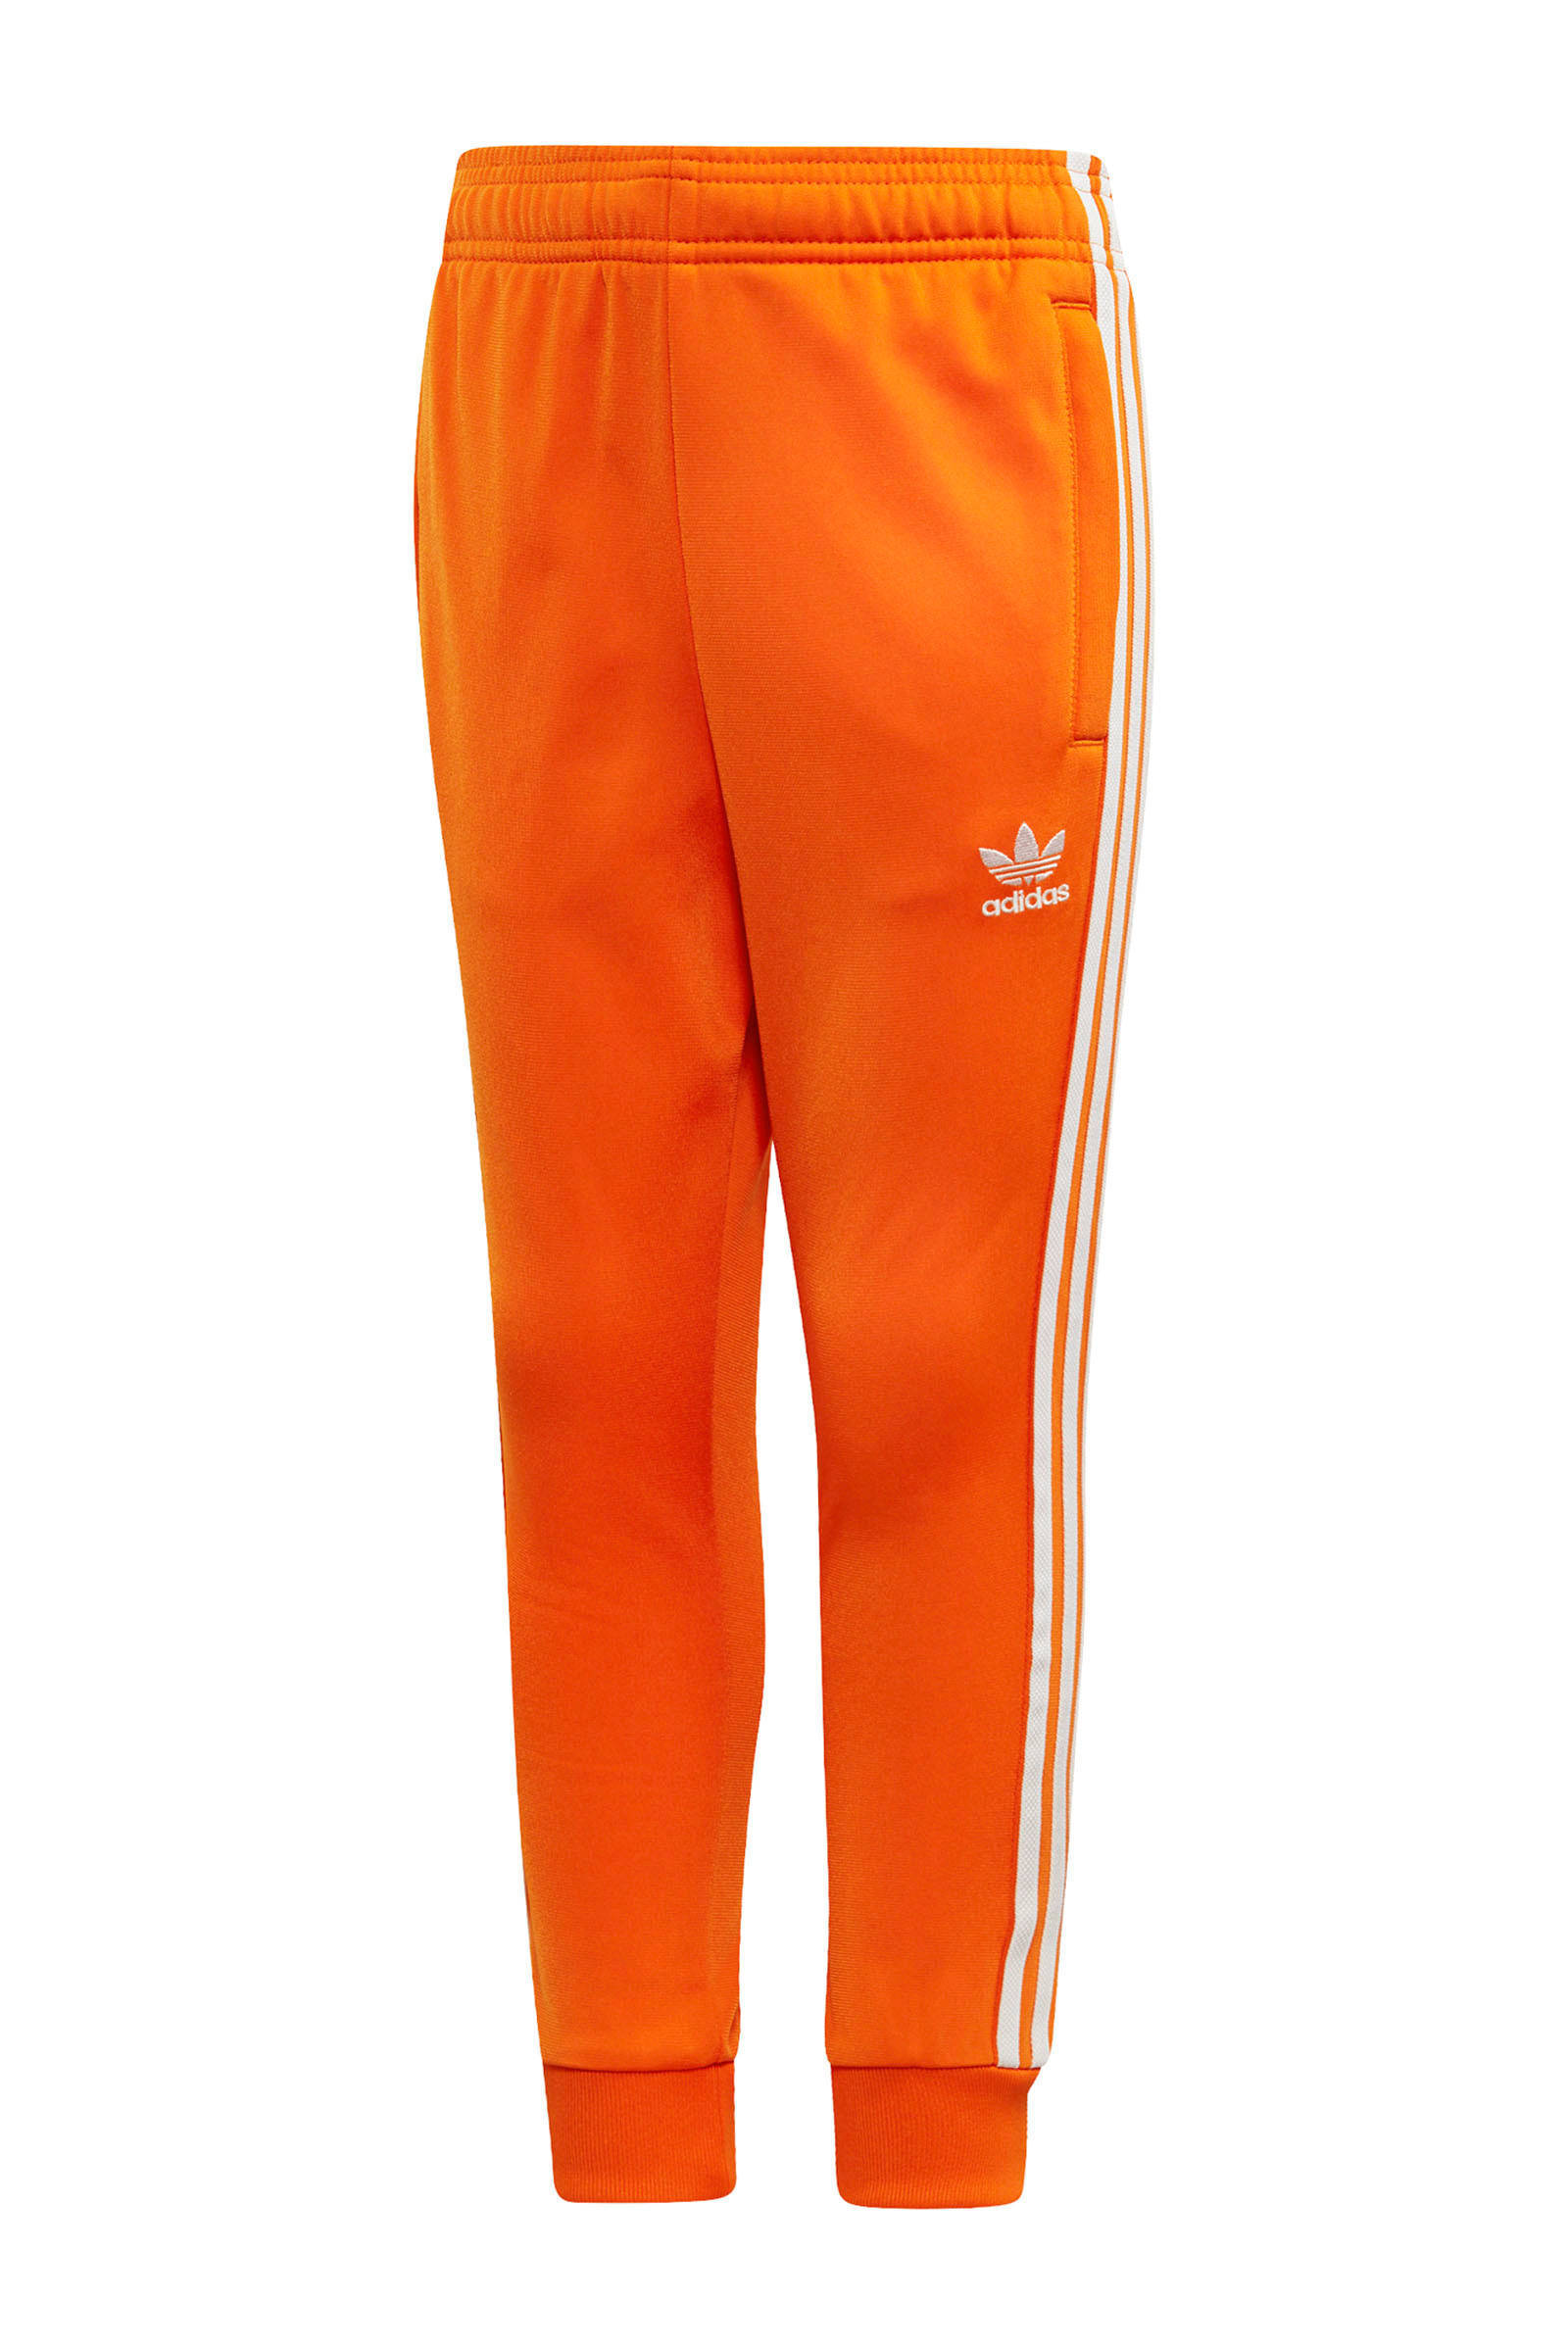 Adicolor trainingspak oranje